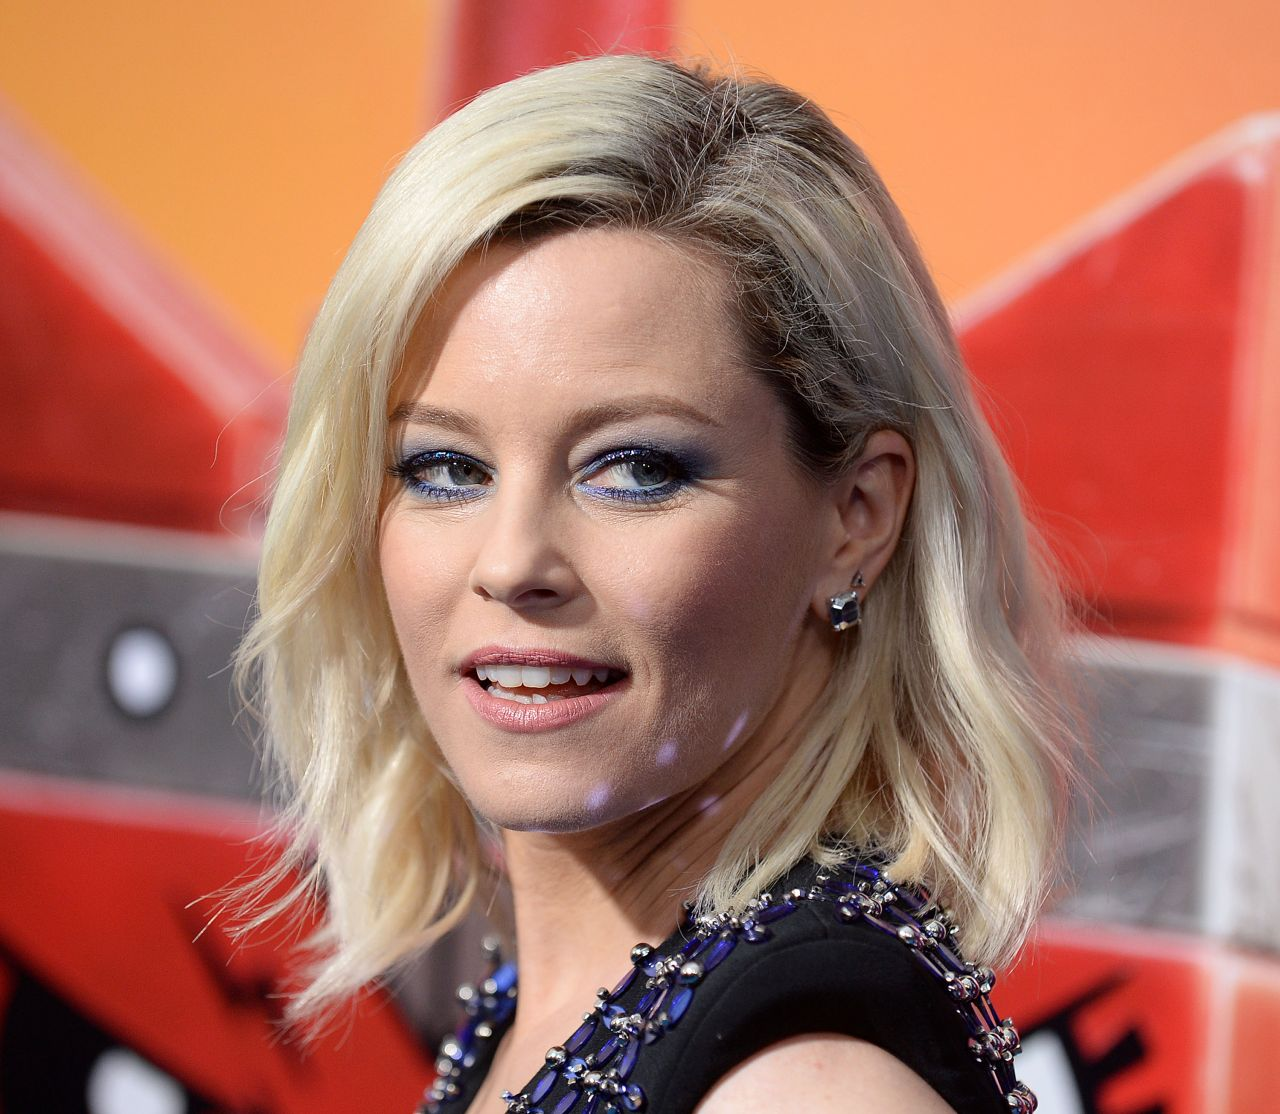 """Elizabeth Banks – """"The Lego Movie 2: The Second Part"""" Premiere at Cineworld in Leicester Square in London - 02/02/2019"""